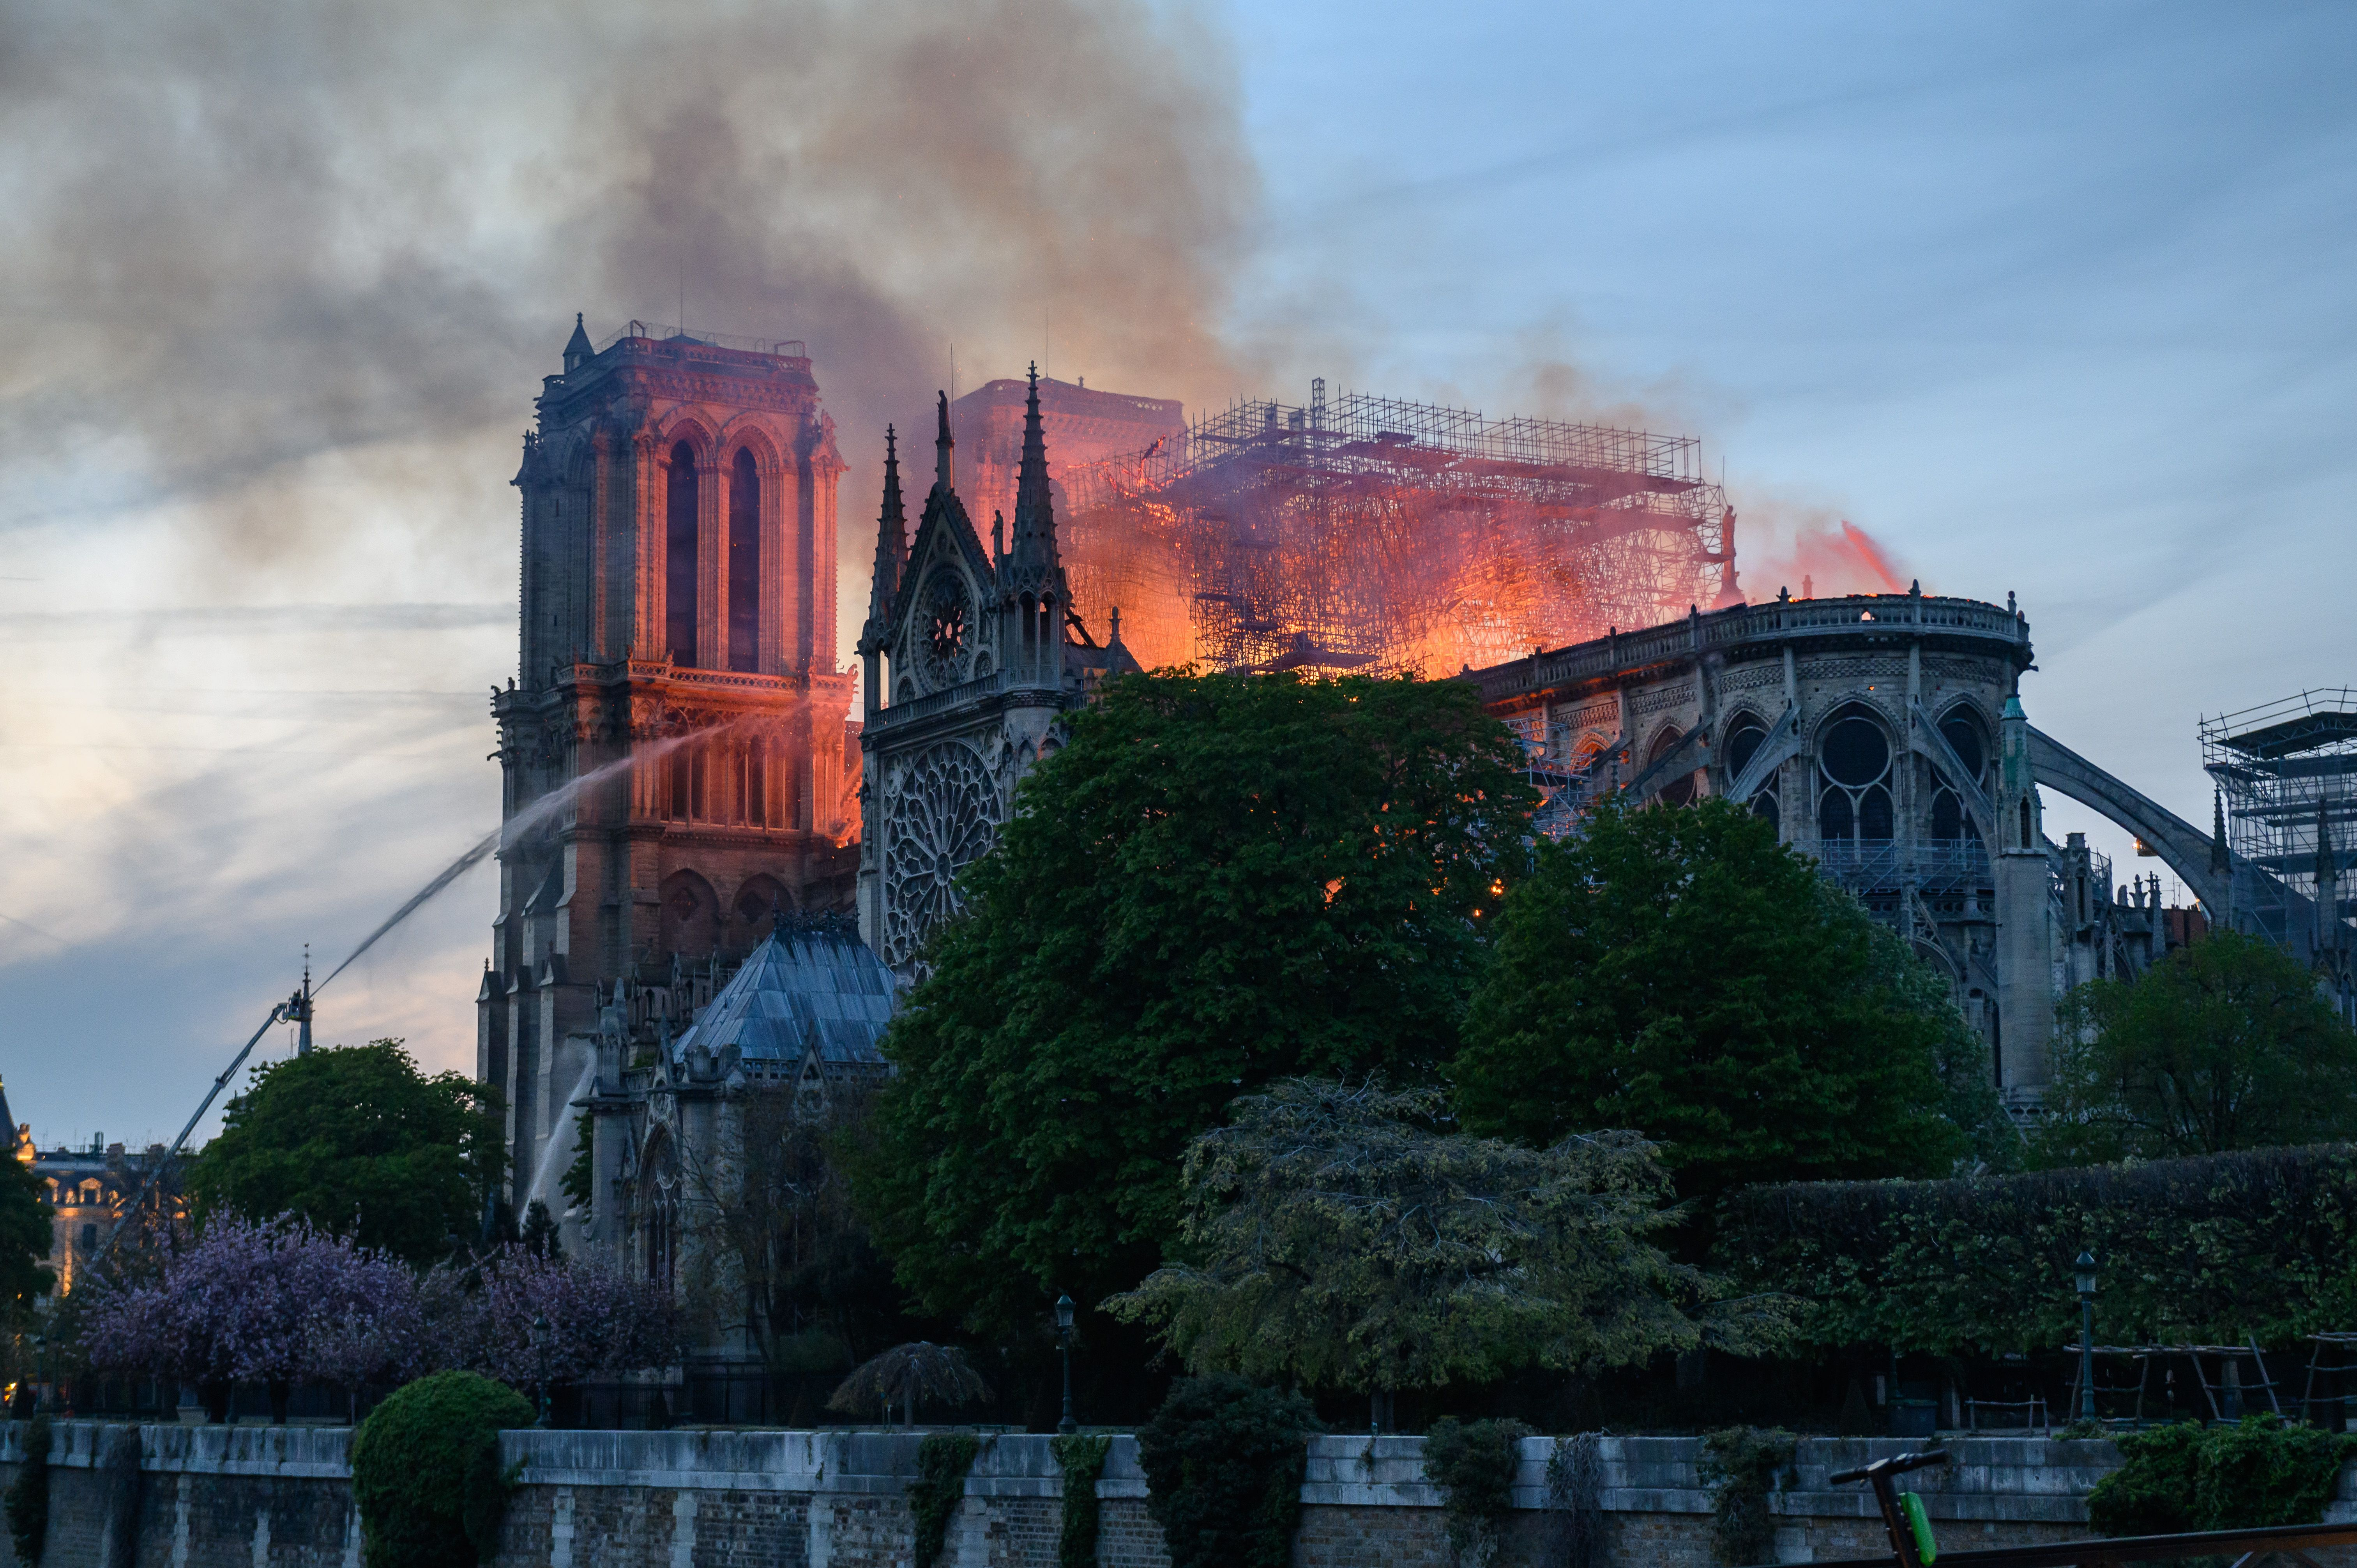 Flames rise from Notre Dame cathedral as it burns.Notre-Dame Cathedral Fire, Paris, France - 15 Apr 2019